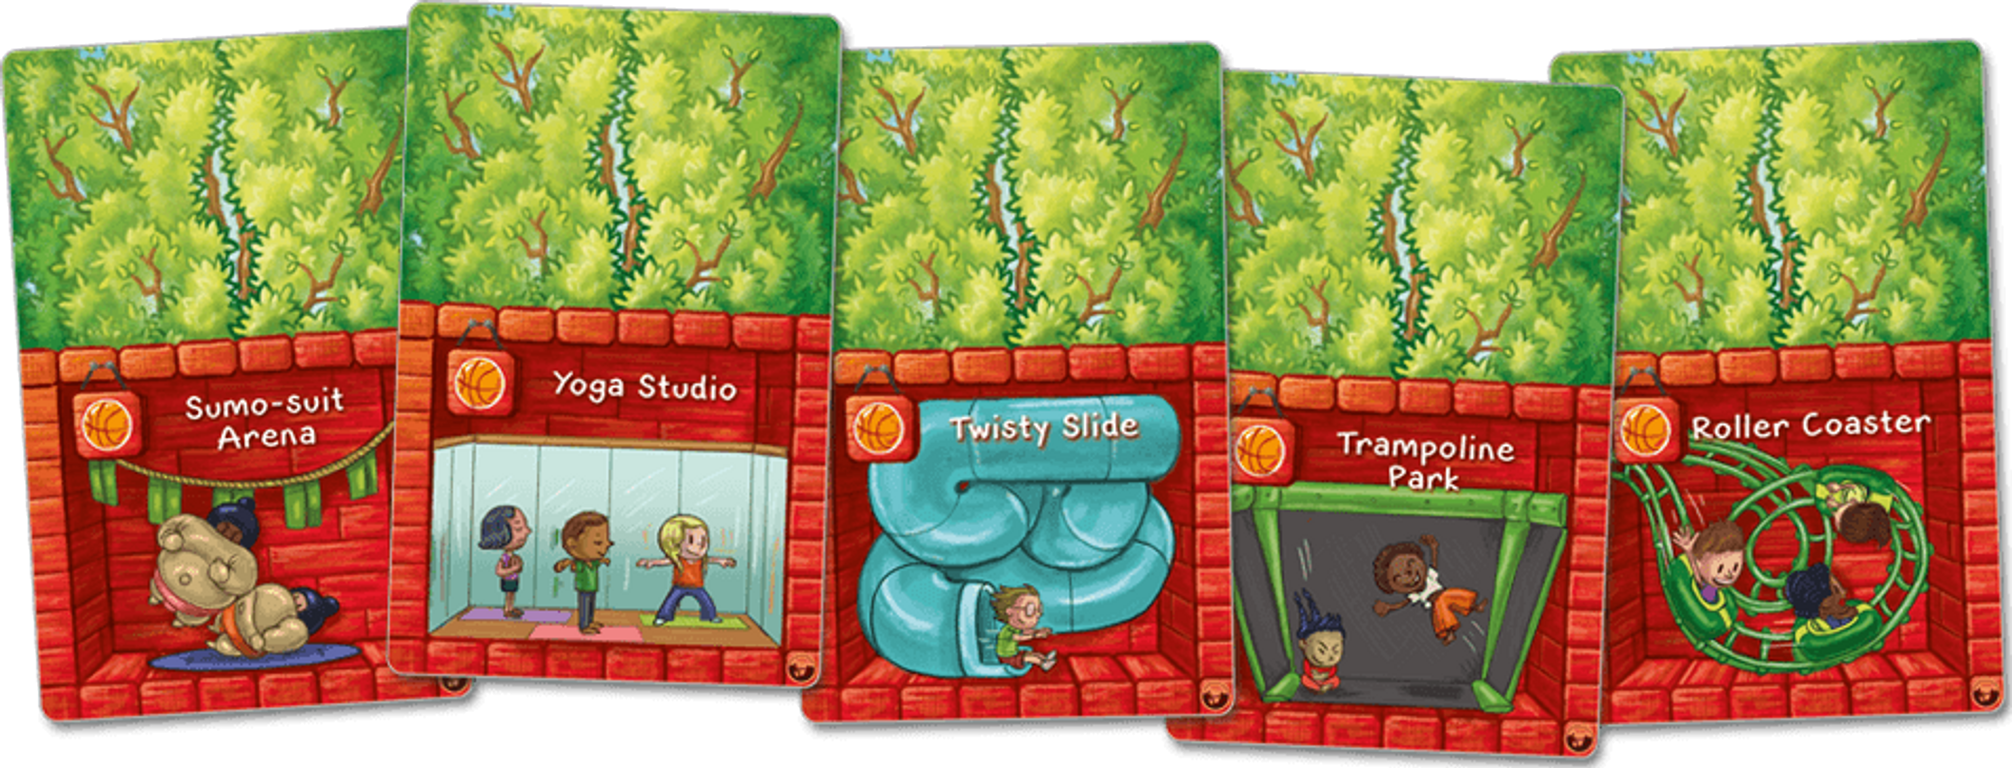 Best Treehouse Ever: Forest of Fun tiles